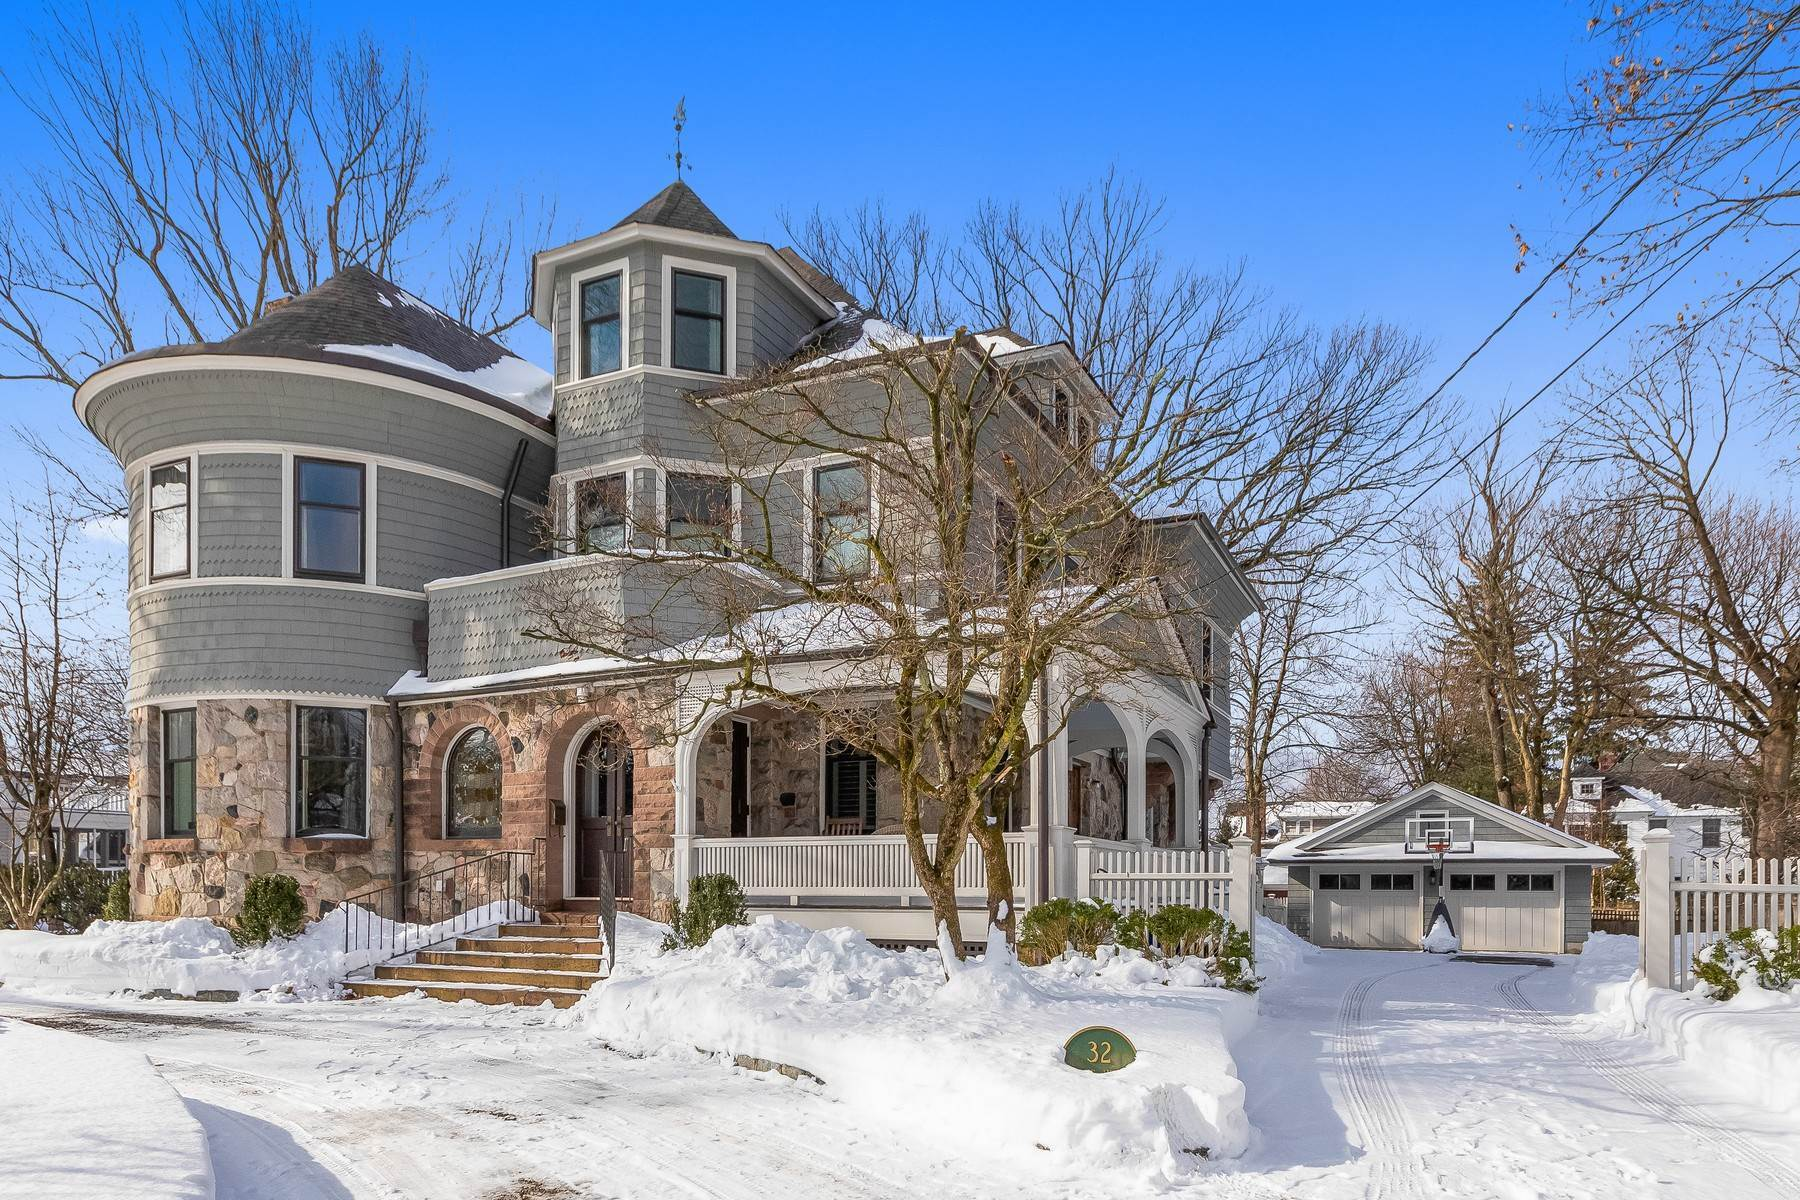 Single Family Homes for Sale at Stunning Victorian In The Heart Of Summit 32 Hobart Avenue, Summit, New Jersey 07901 United States